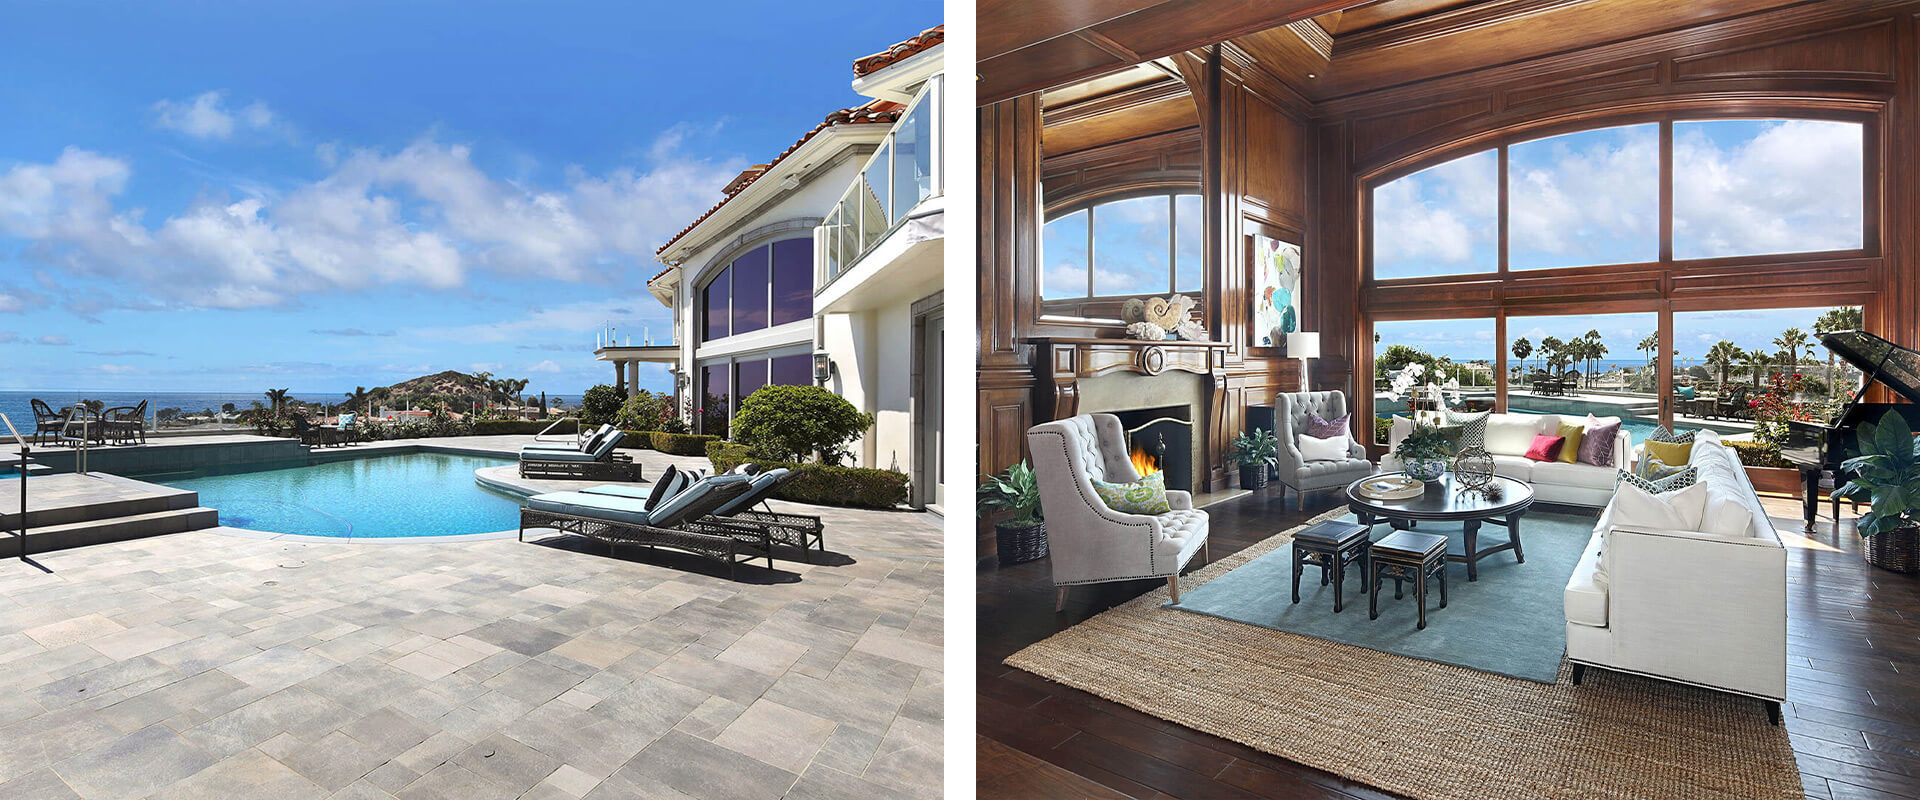 Featured Home - 120 Irvine Cove Circle